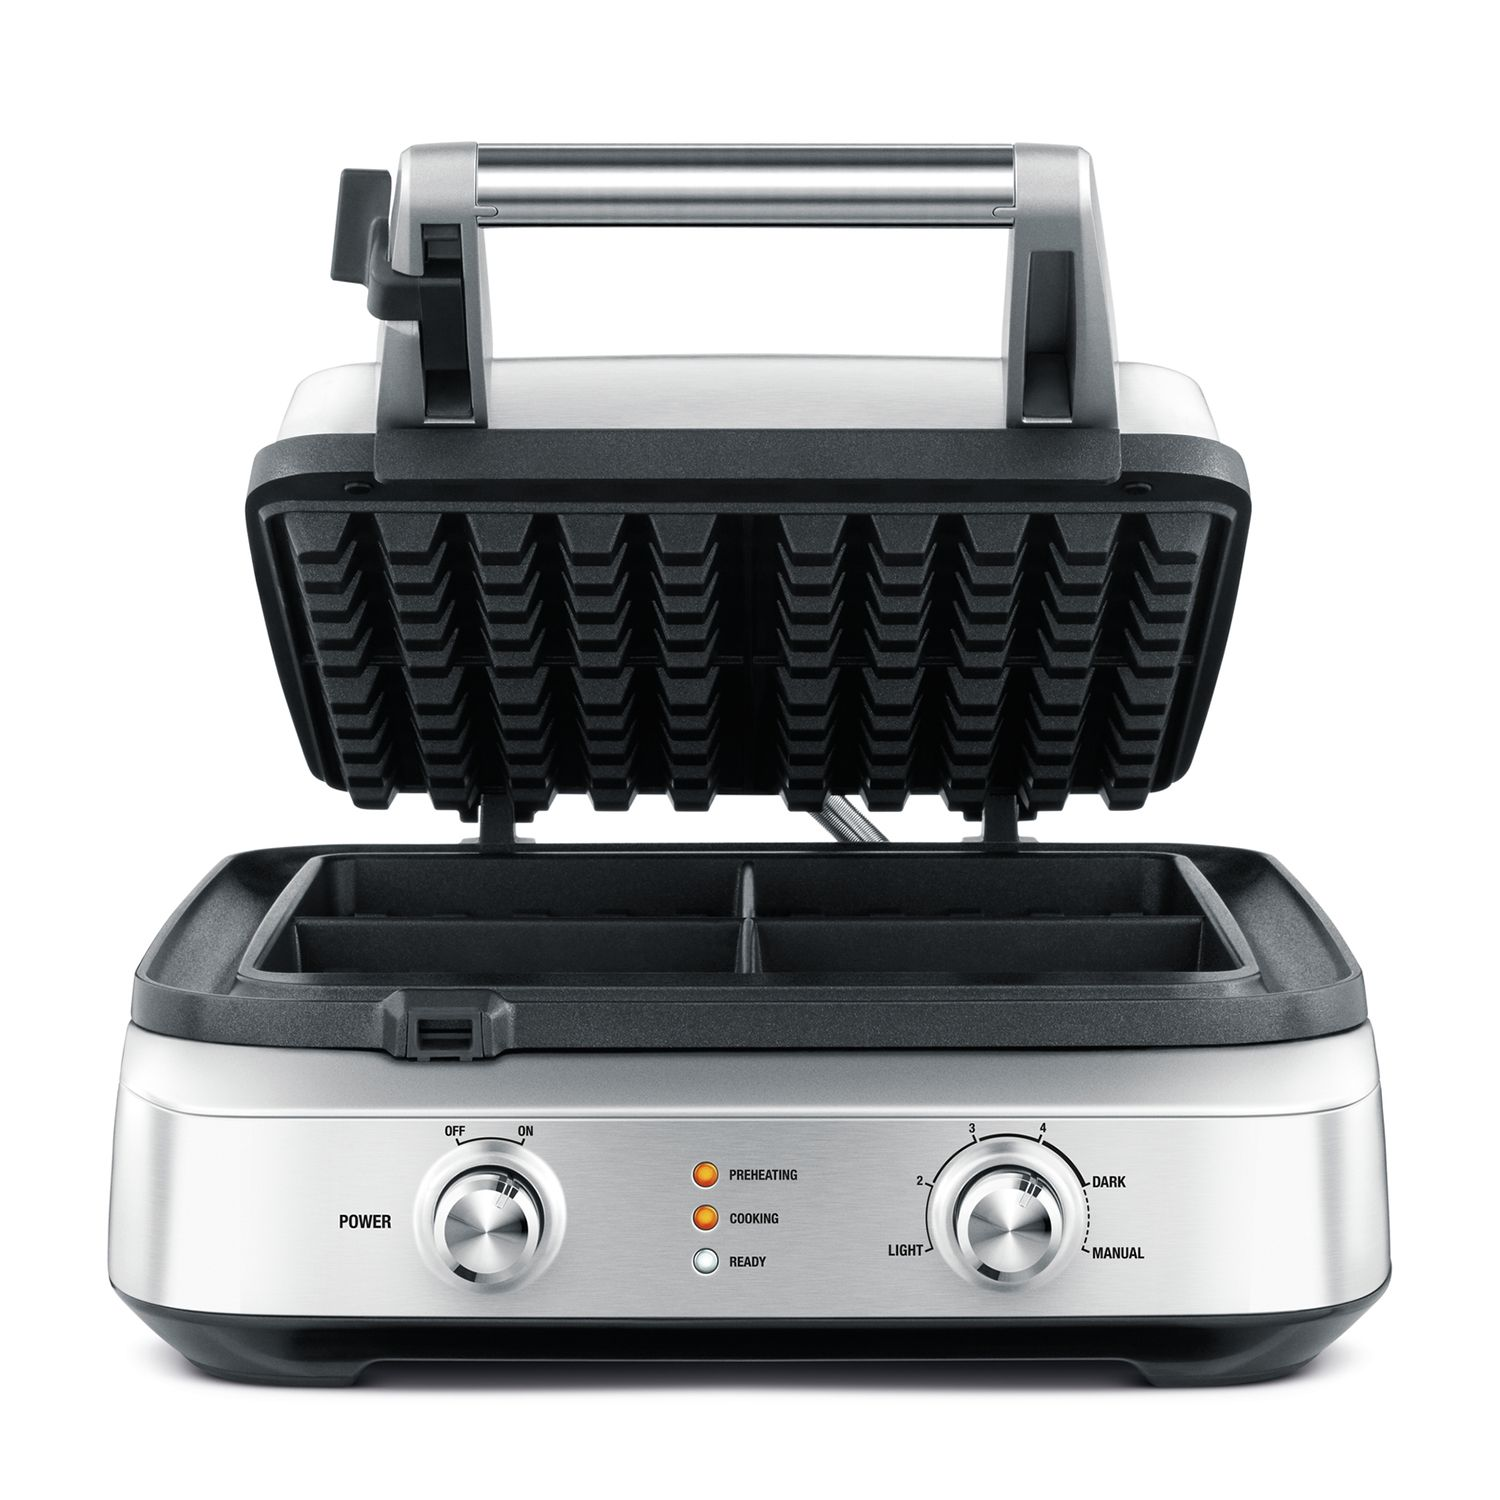 Breville Smart Waffle (With images) Brushed stainless